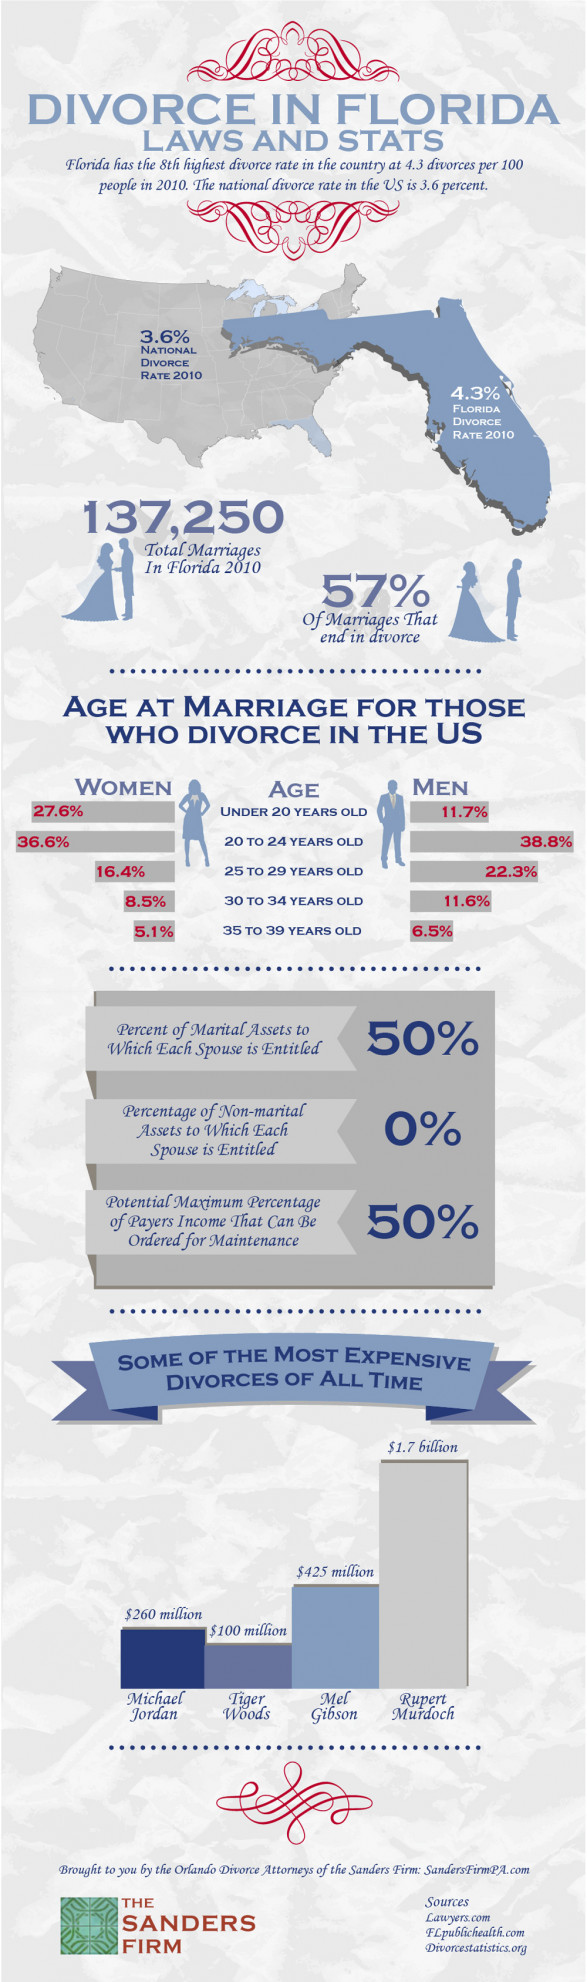 Divorce in Florida